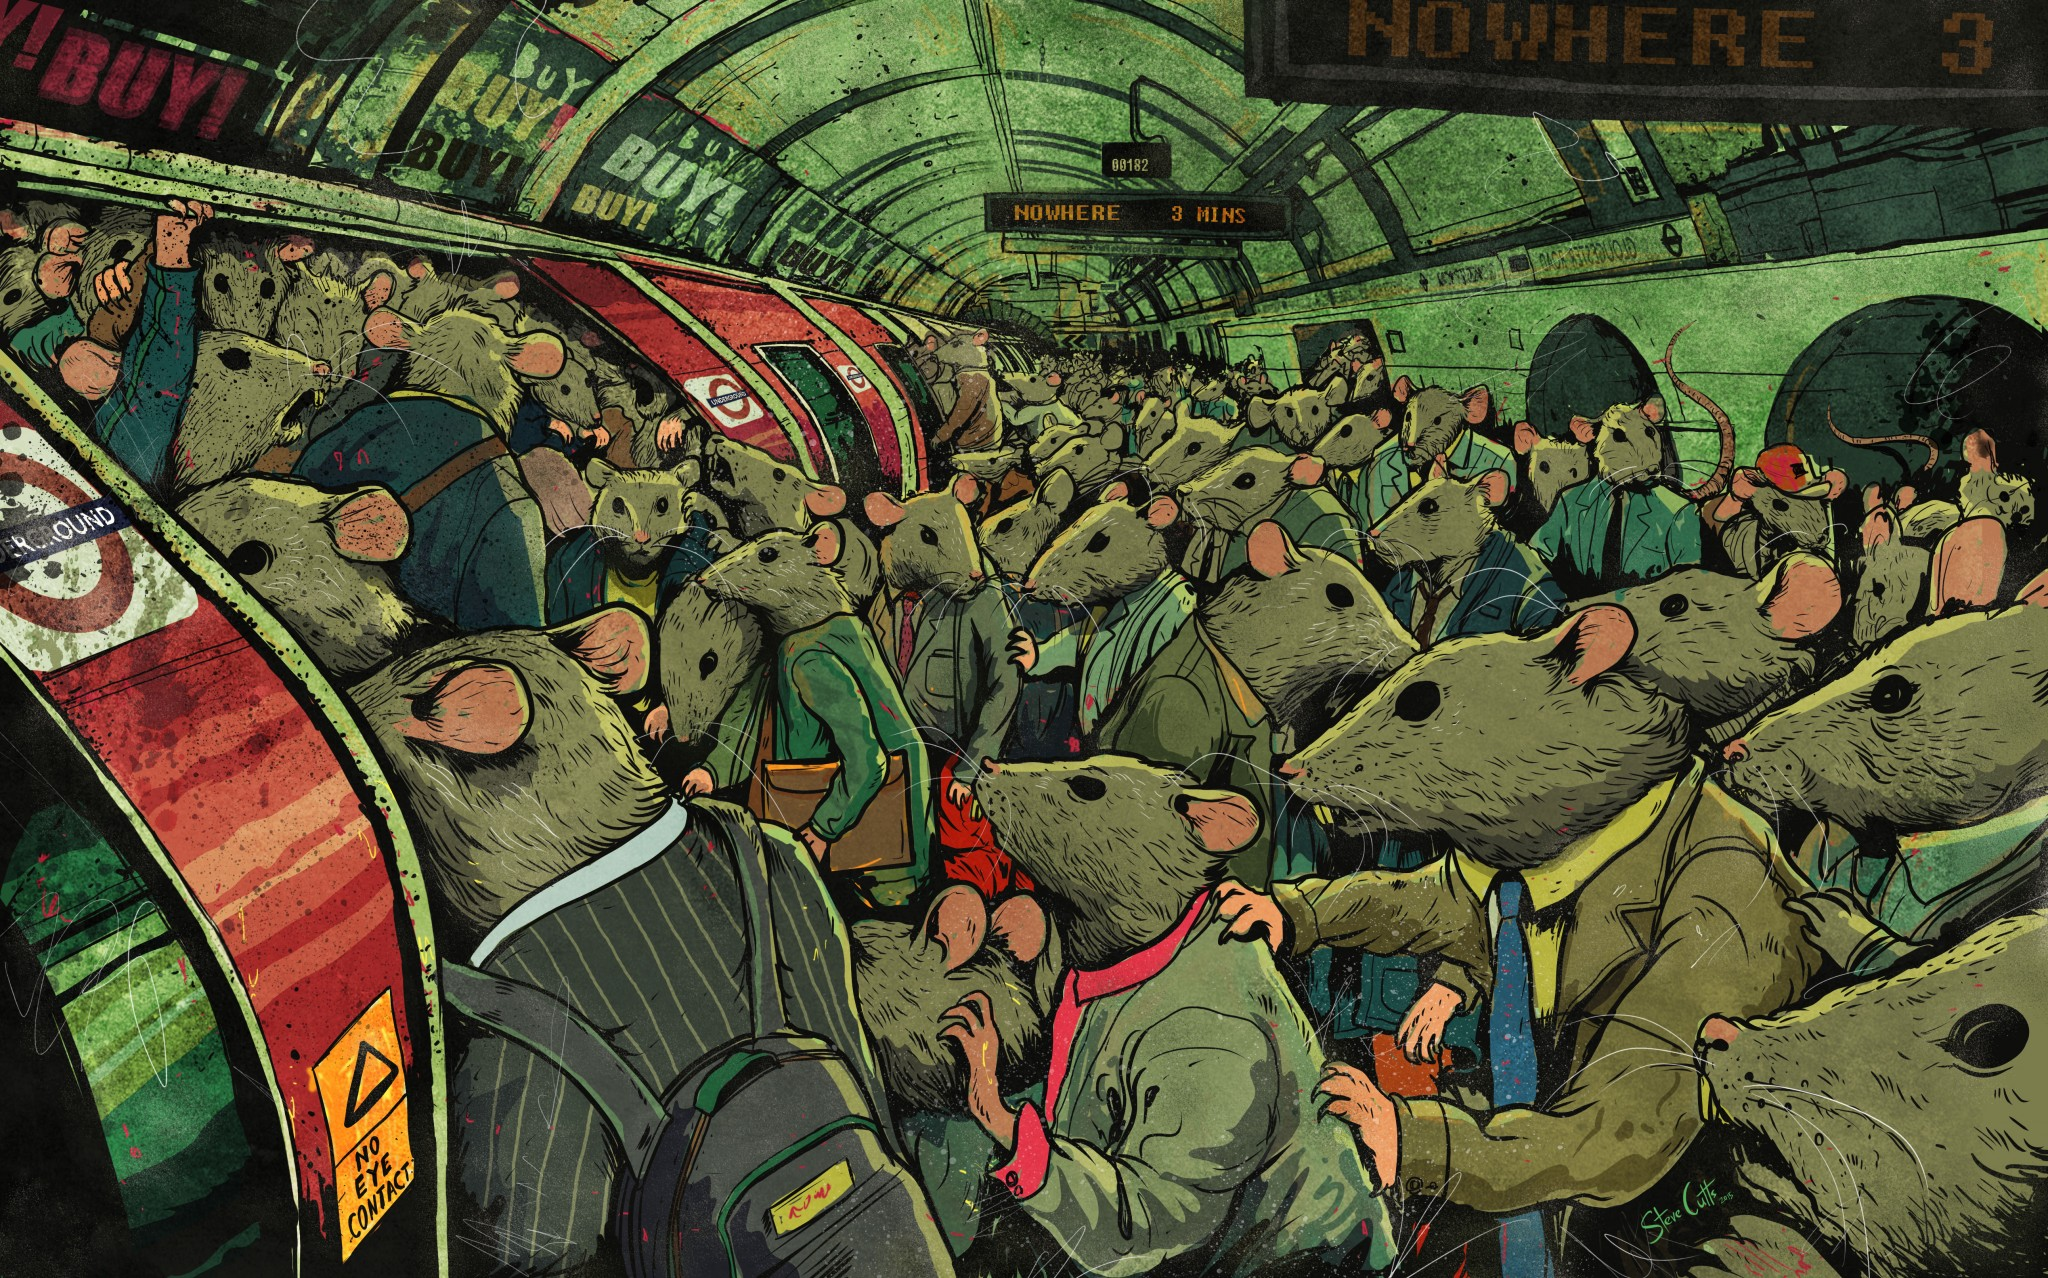 Tube Rats by Steve Cutts